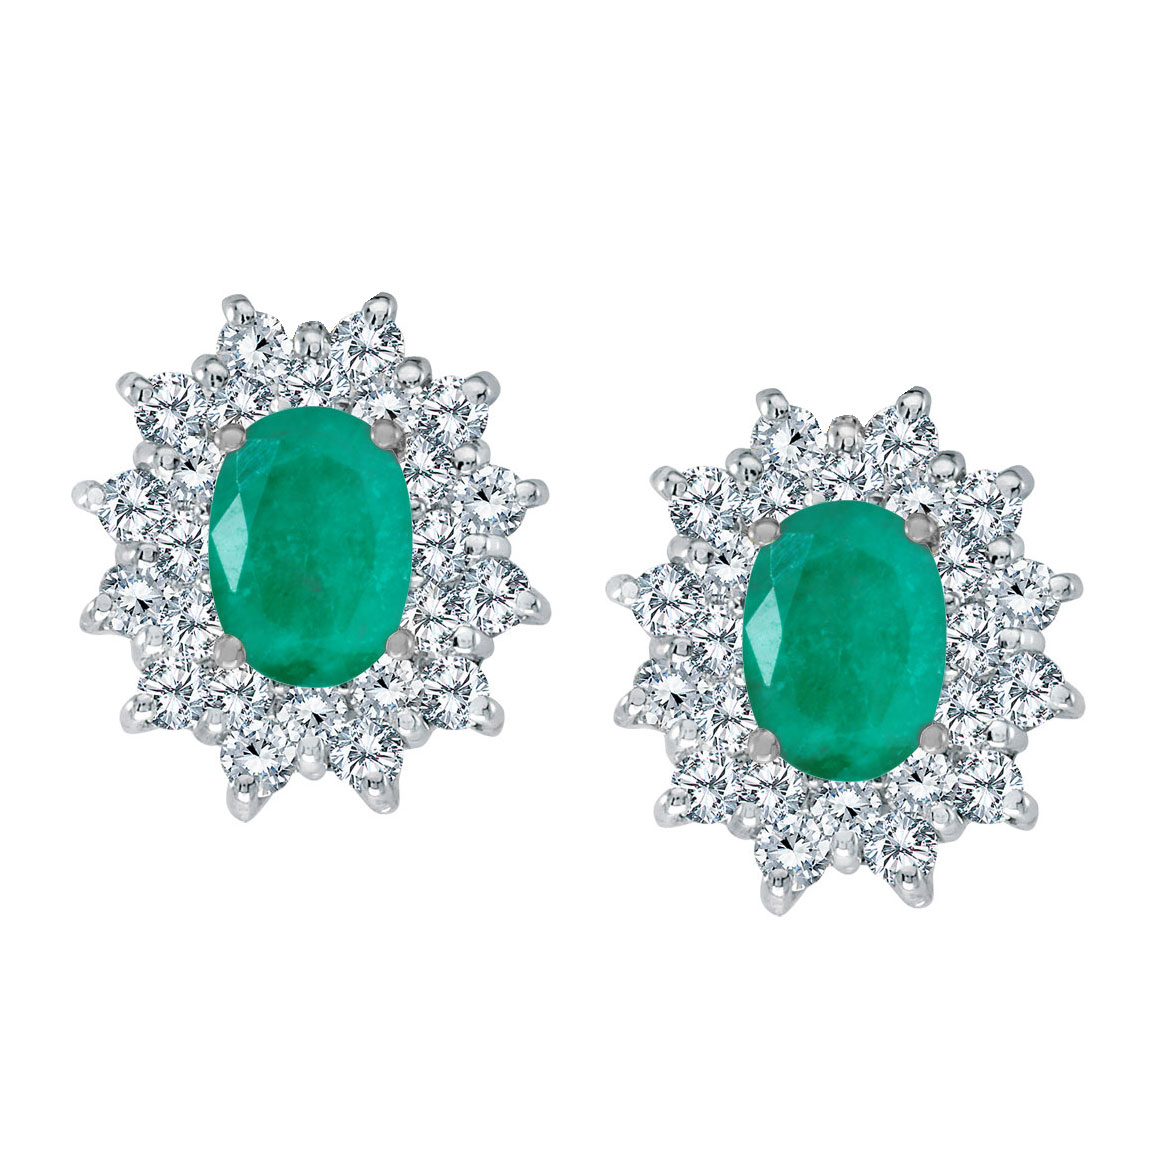 Bright 14k white gold earrings featuring 7x5 mm emeralds surrounded by 1.00 total carat of scinti...